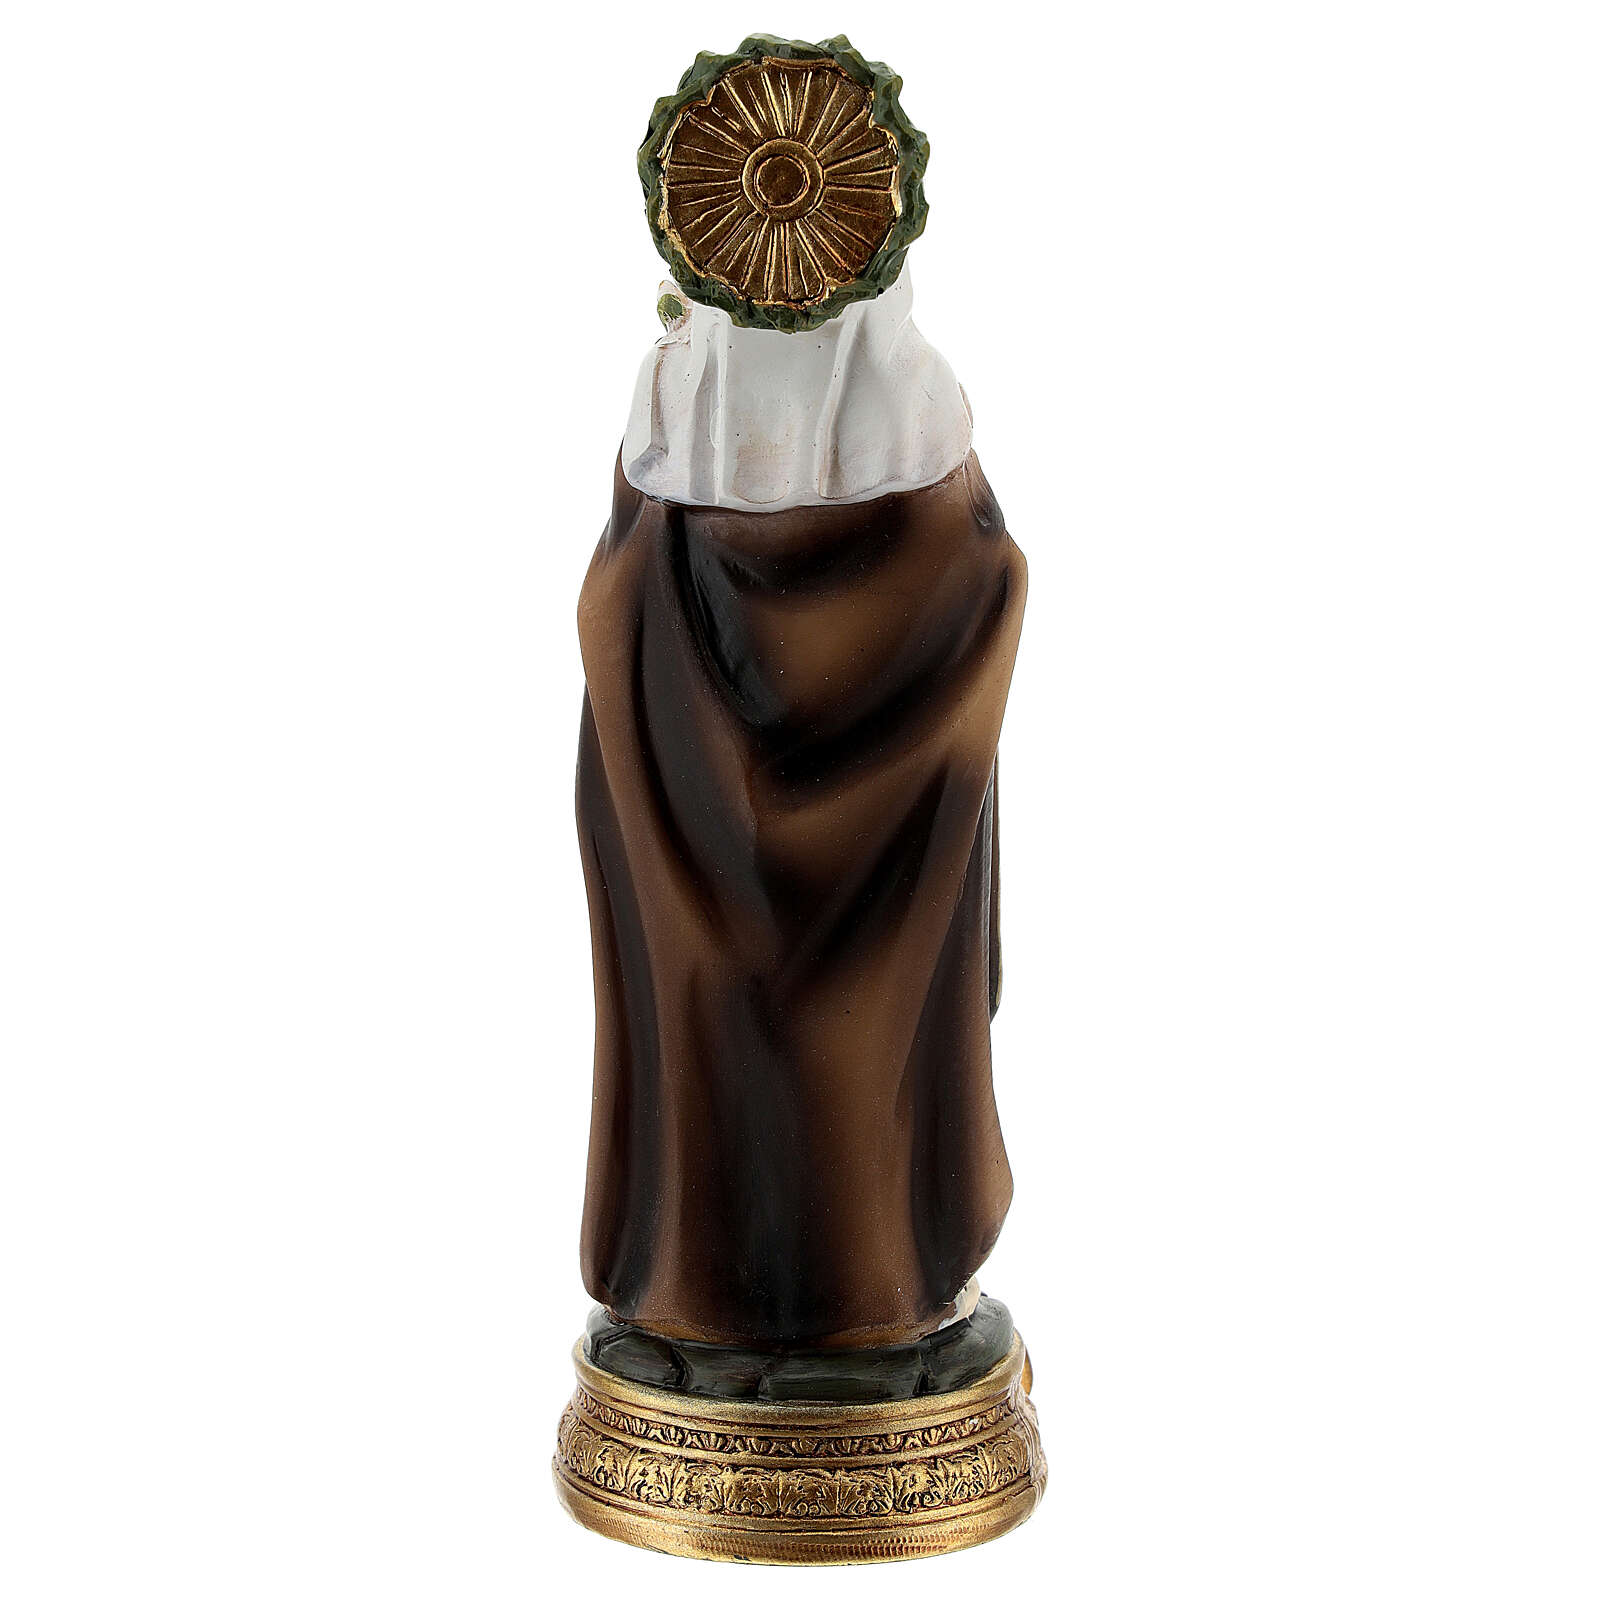 St. Catherine of Siena crown of thorns lily resin statue 12.5 cm 4